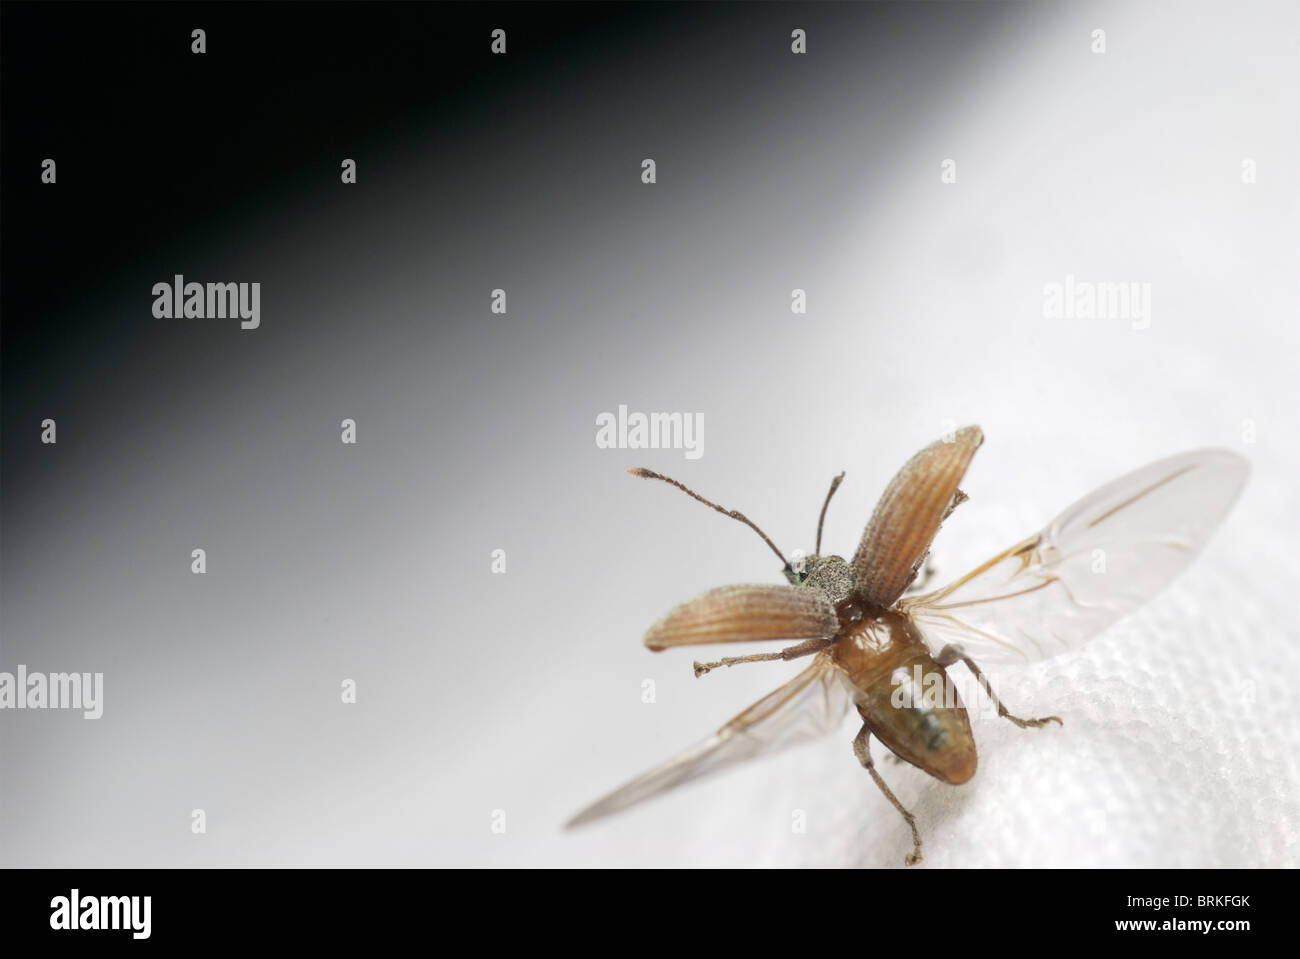 Cyrtepistomus castaneus, Asiatic oak weevil, taking off. - Stock Image